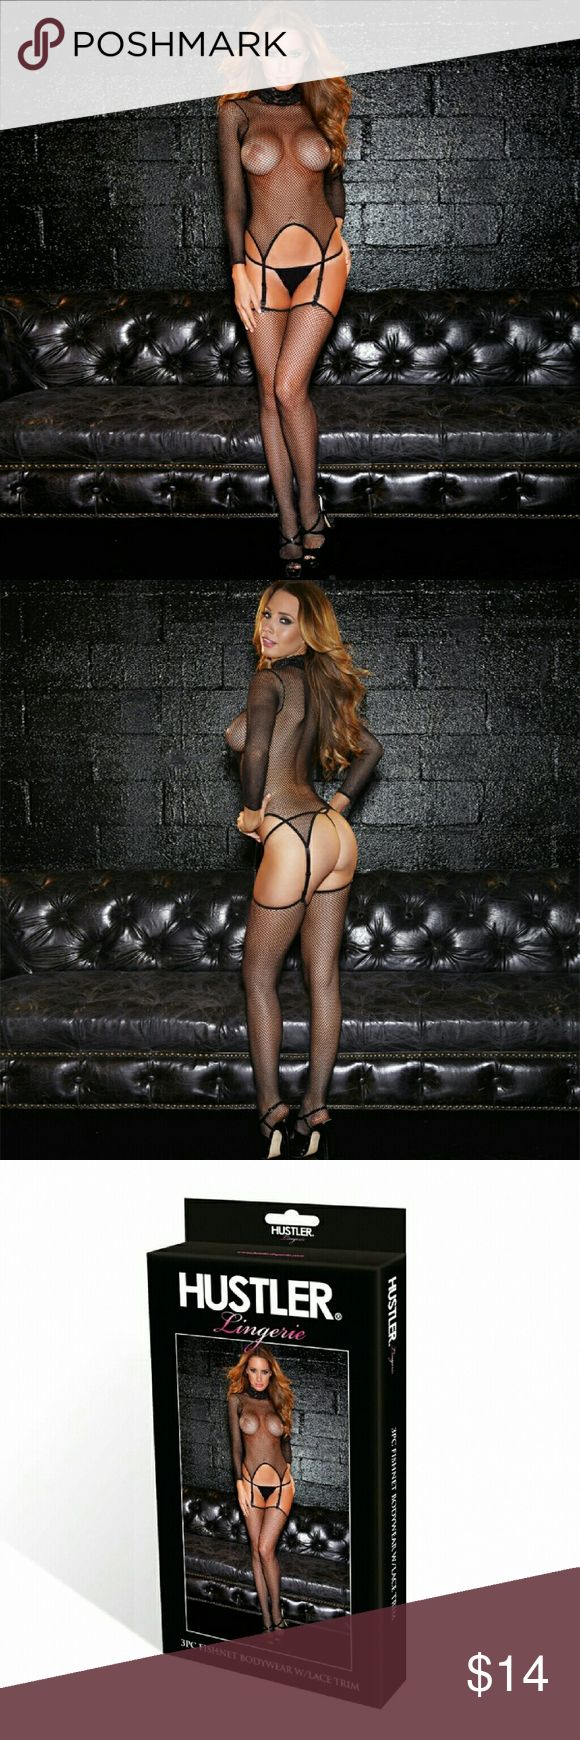 Hustler Lingeries 3PC Fishnet Bodysuit W/Lace Trim This 3pc set with lace trim outfit is the perfect for a wild night. Featuring an alluring fishnet pattern and lace , this set includes sexy garter a d thigh highs. ONE SIZE FIT MOST  (fit up to size 10) 90% Nylon 10% Spandex Hustler Lingeries  Intimates & Sleepwear